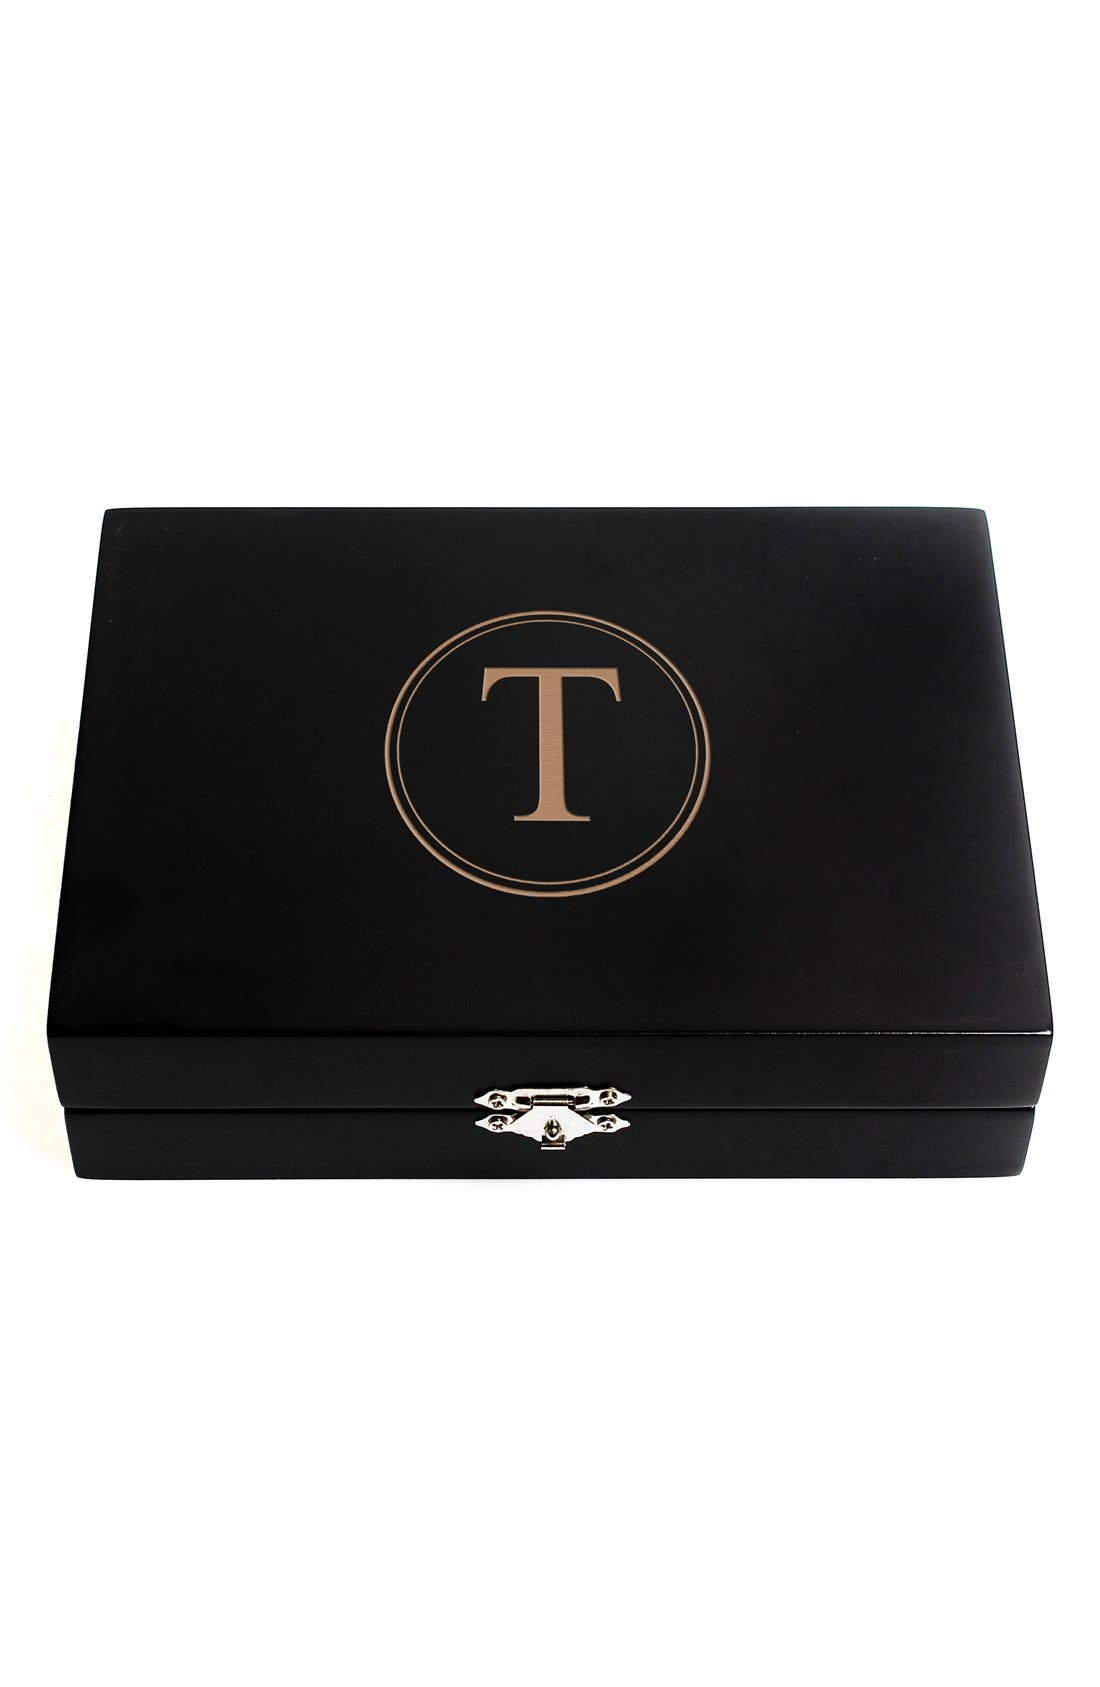 Monogram Wooden Jewelry Box,                             Main thumbnail 22, color,